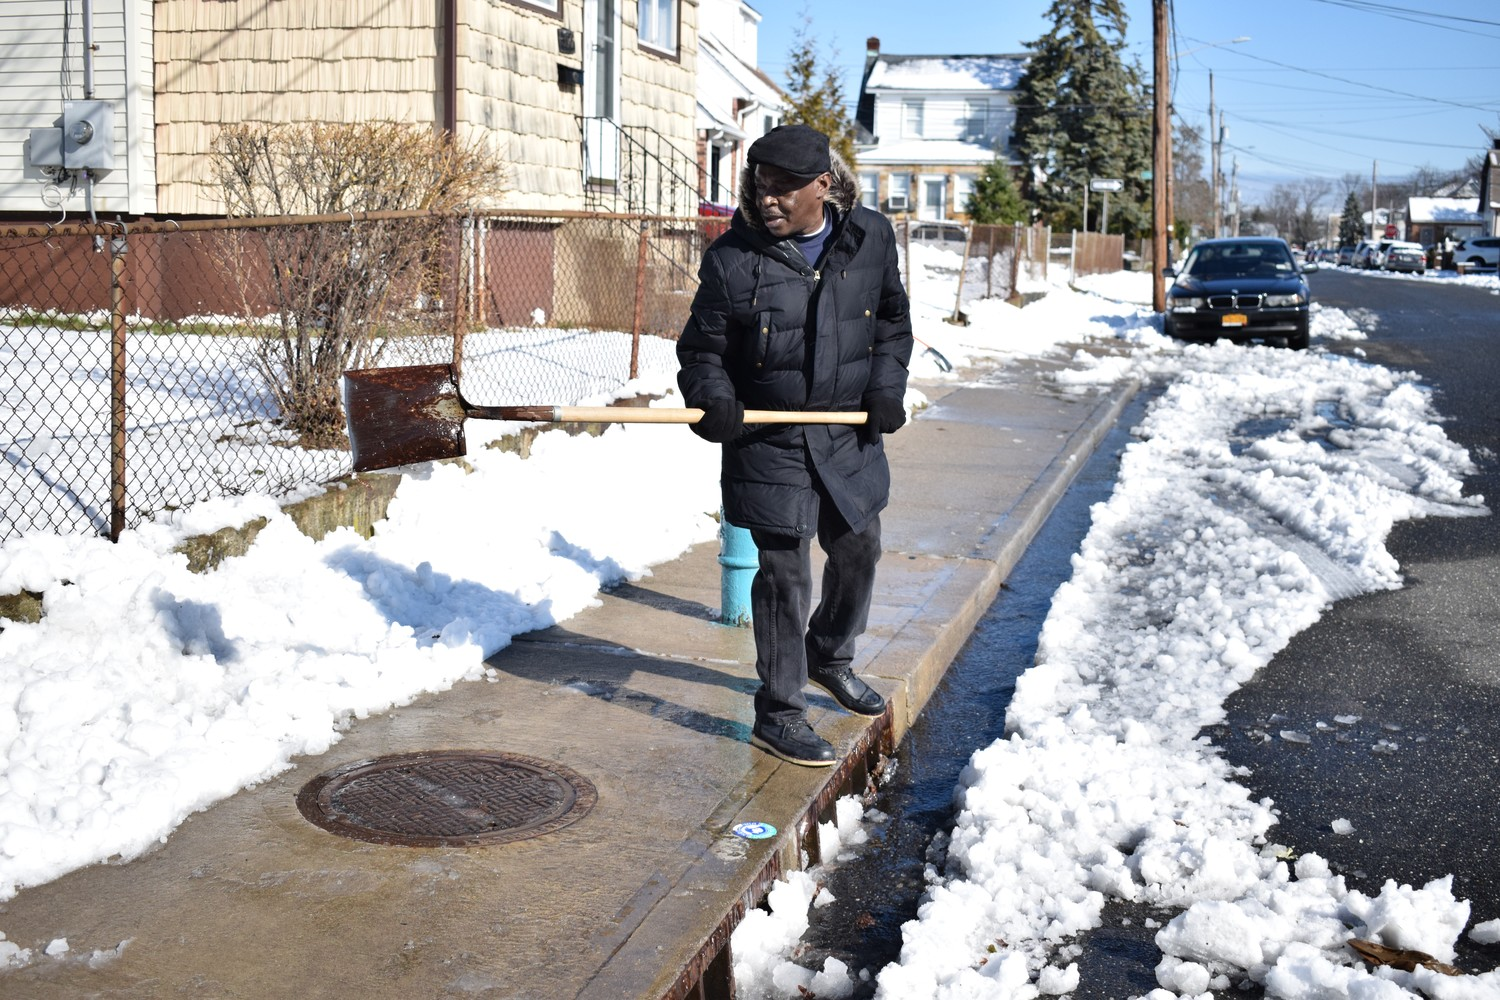 Resident Morgan Shervin cleared away snow on Evans Avenue in Elmont after the storm.